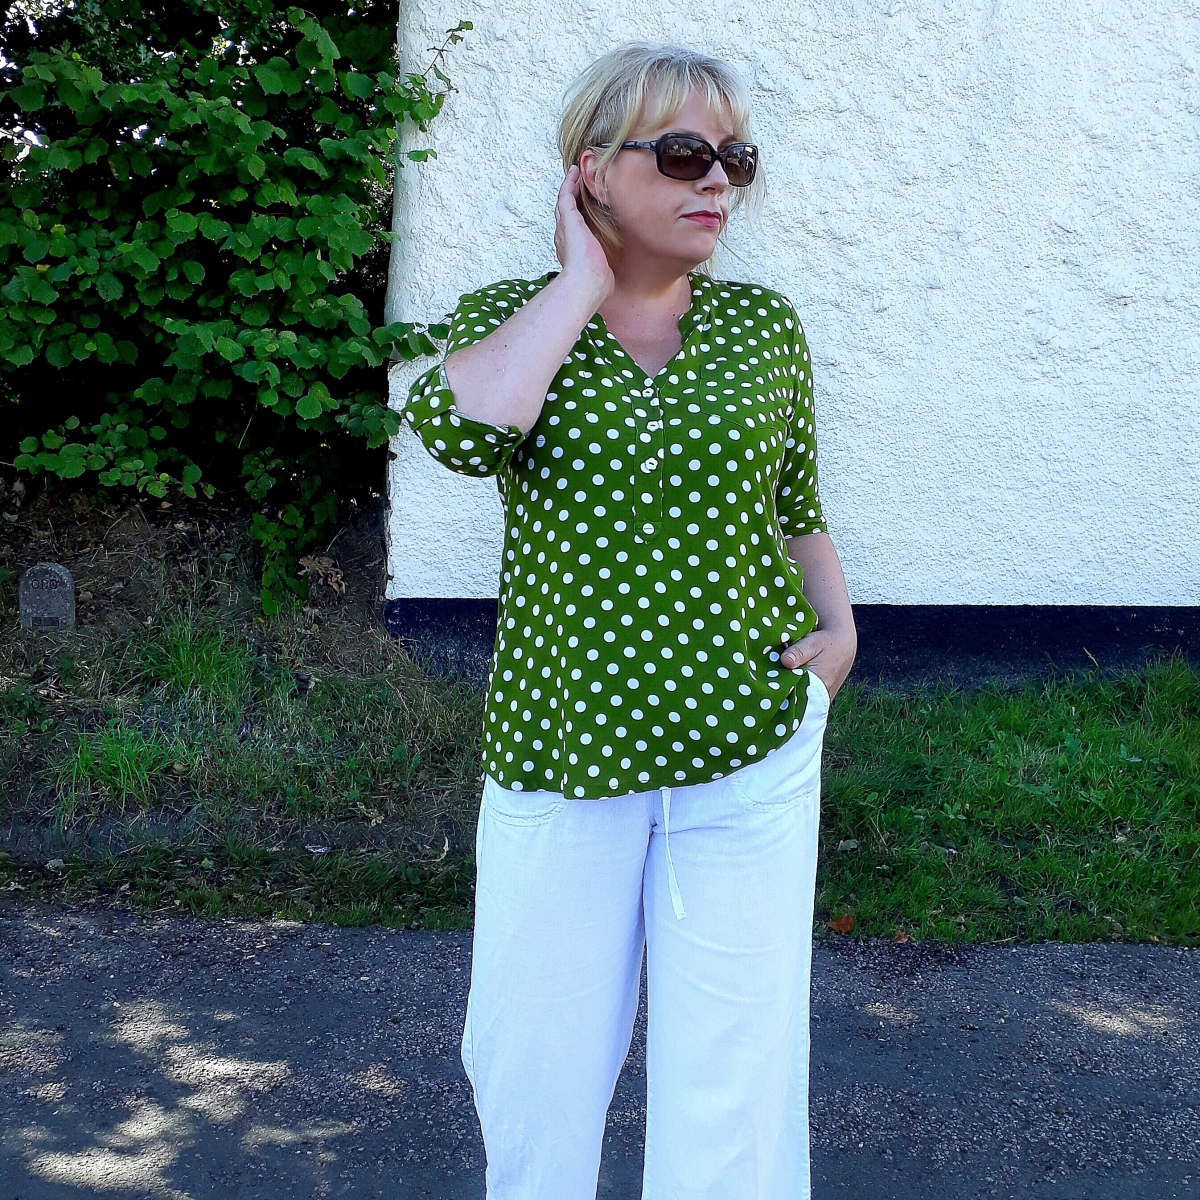 A Polka 'Cheyenne Tunic' by Hey June Handmade ... and a little bit about French Seams